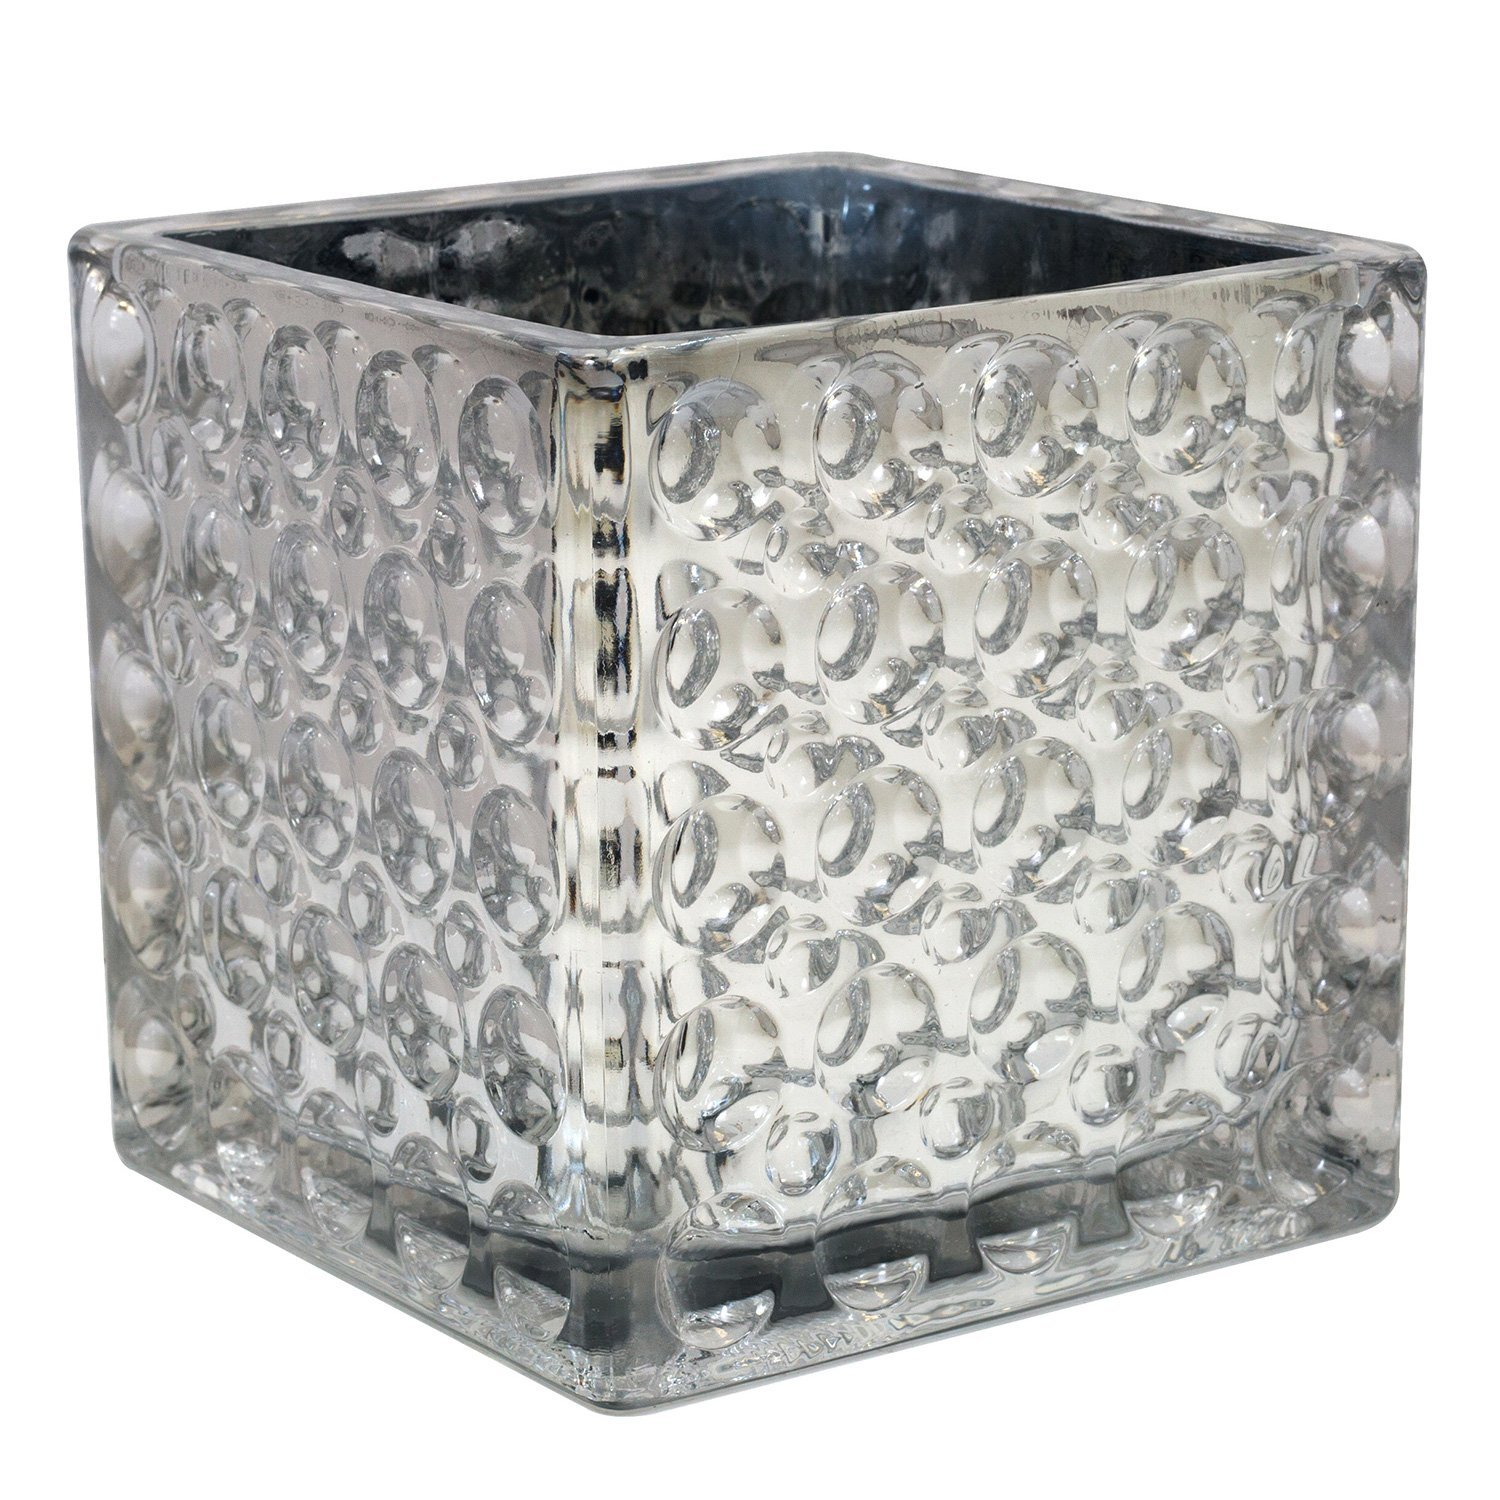 Cheap silver glass vase find silver glass vase deals on line at get quotations flower glass vase decorative centerpiece for home or wedding by royal imports elegant dimple effect reviewsmspy